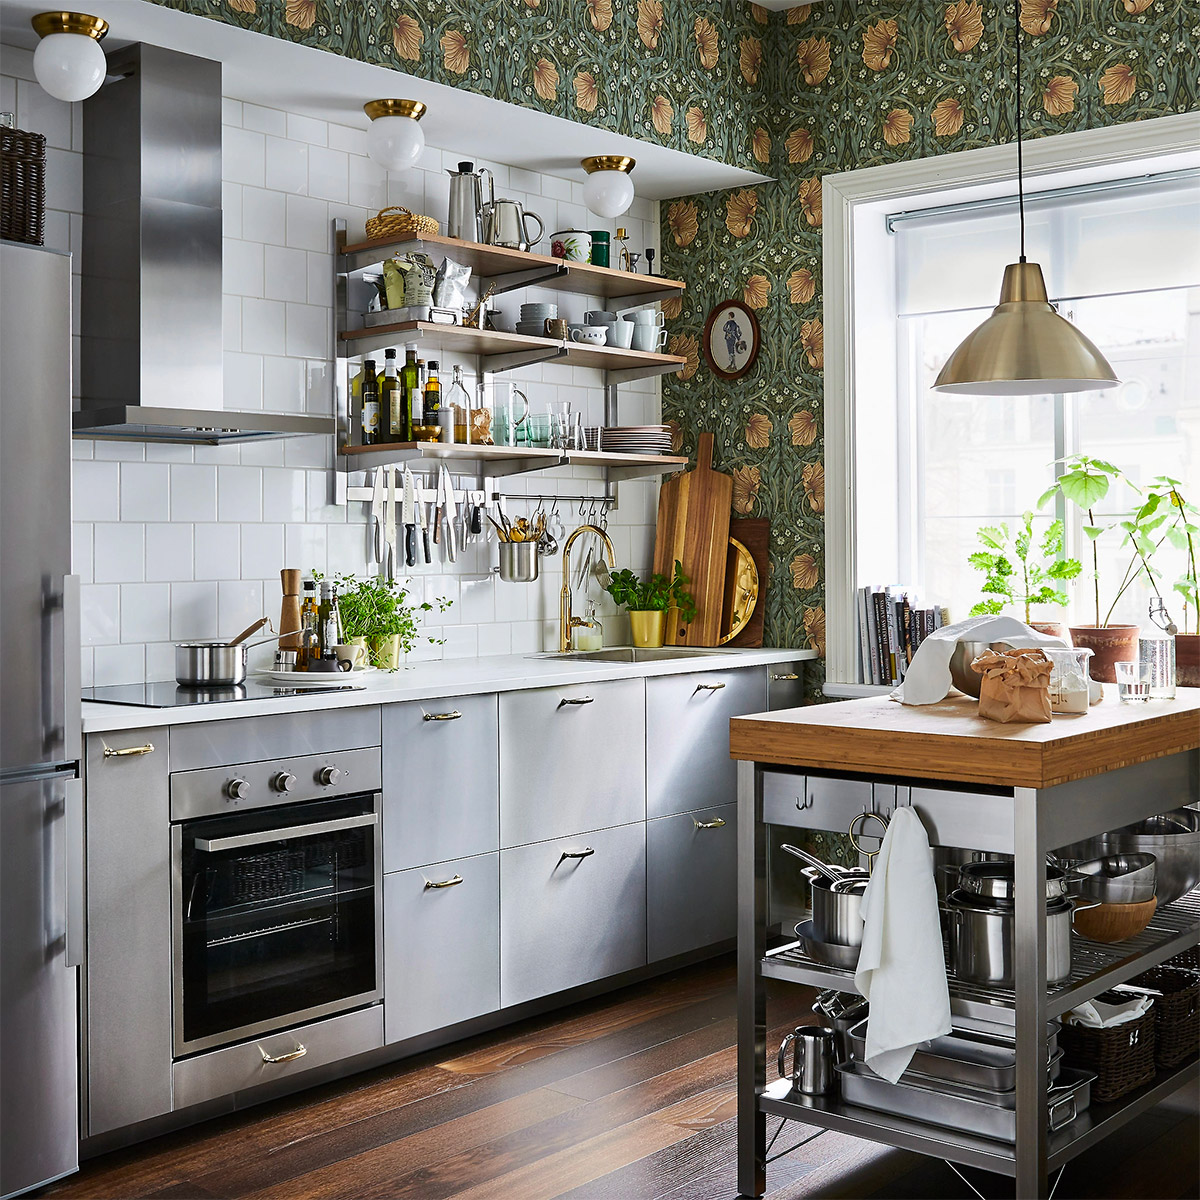 Messy Work Kitchen: 50 Splendid Small Kitchens And Ideas You Can Use From Them